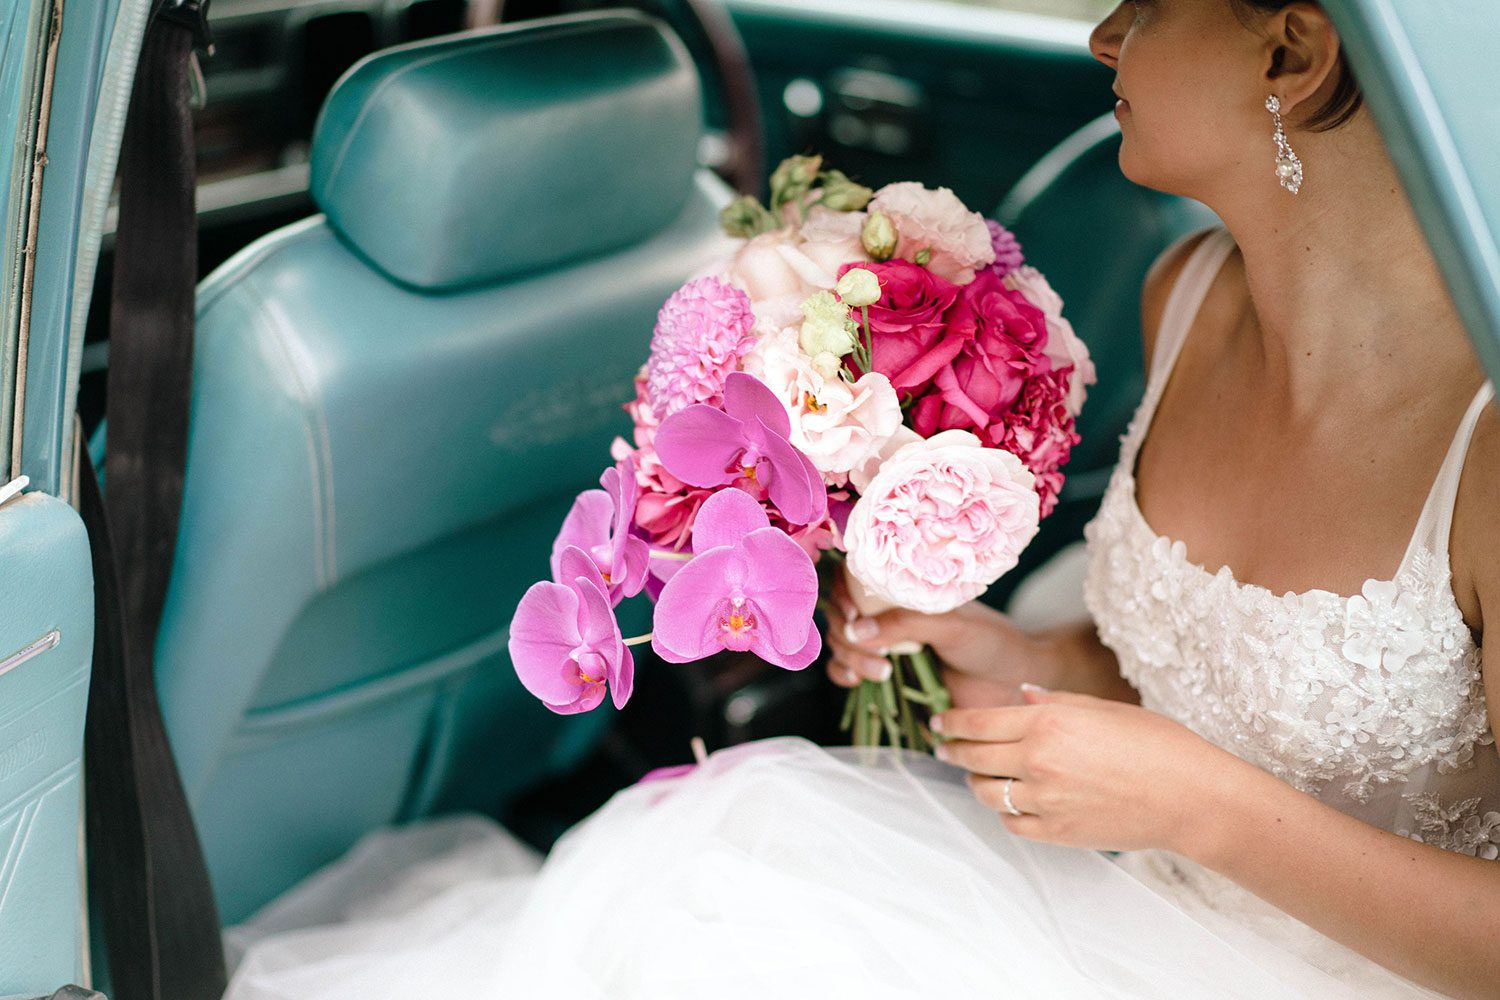 Bride wears bespoke E'More lace gown with boned bodice with hand beaded flower applique and full lace train by Auckland wedding dress maker Vinka designs - with bouquet in vintage car